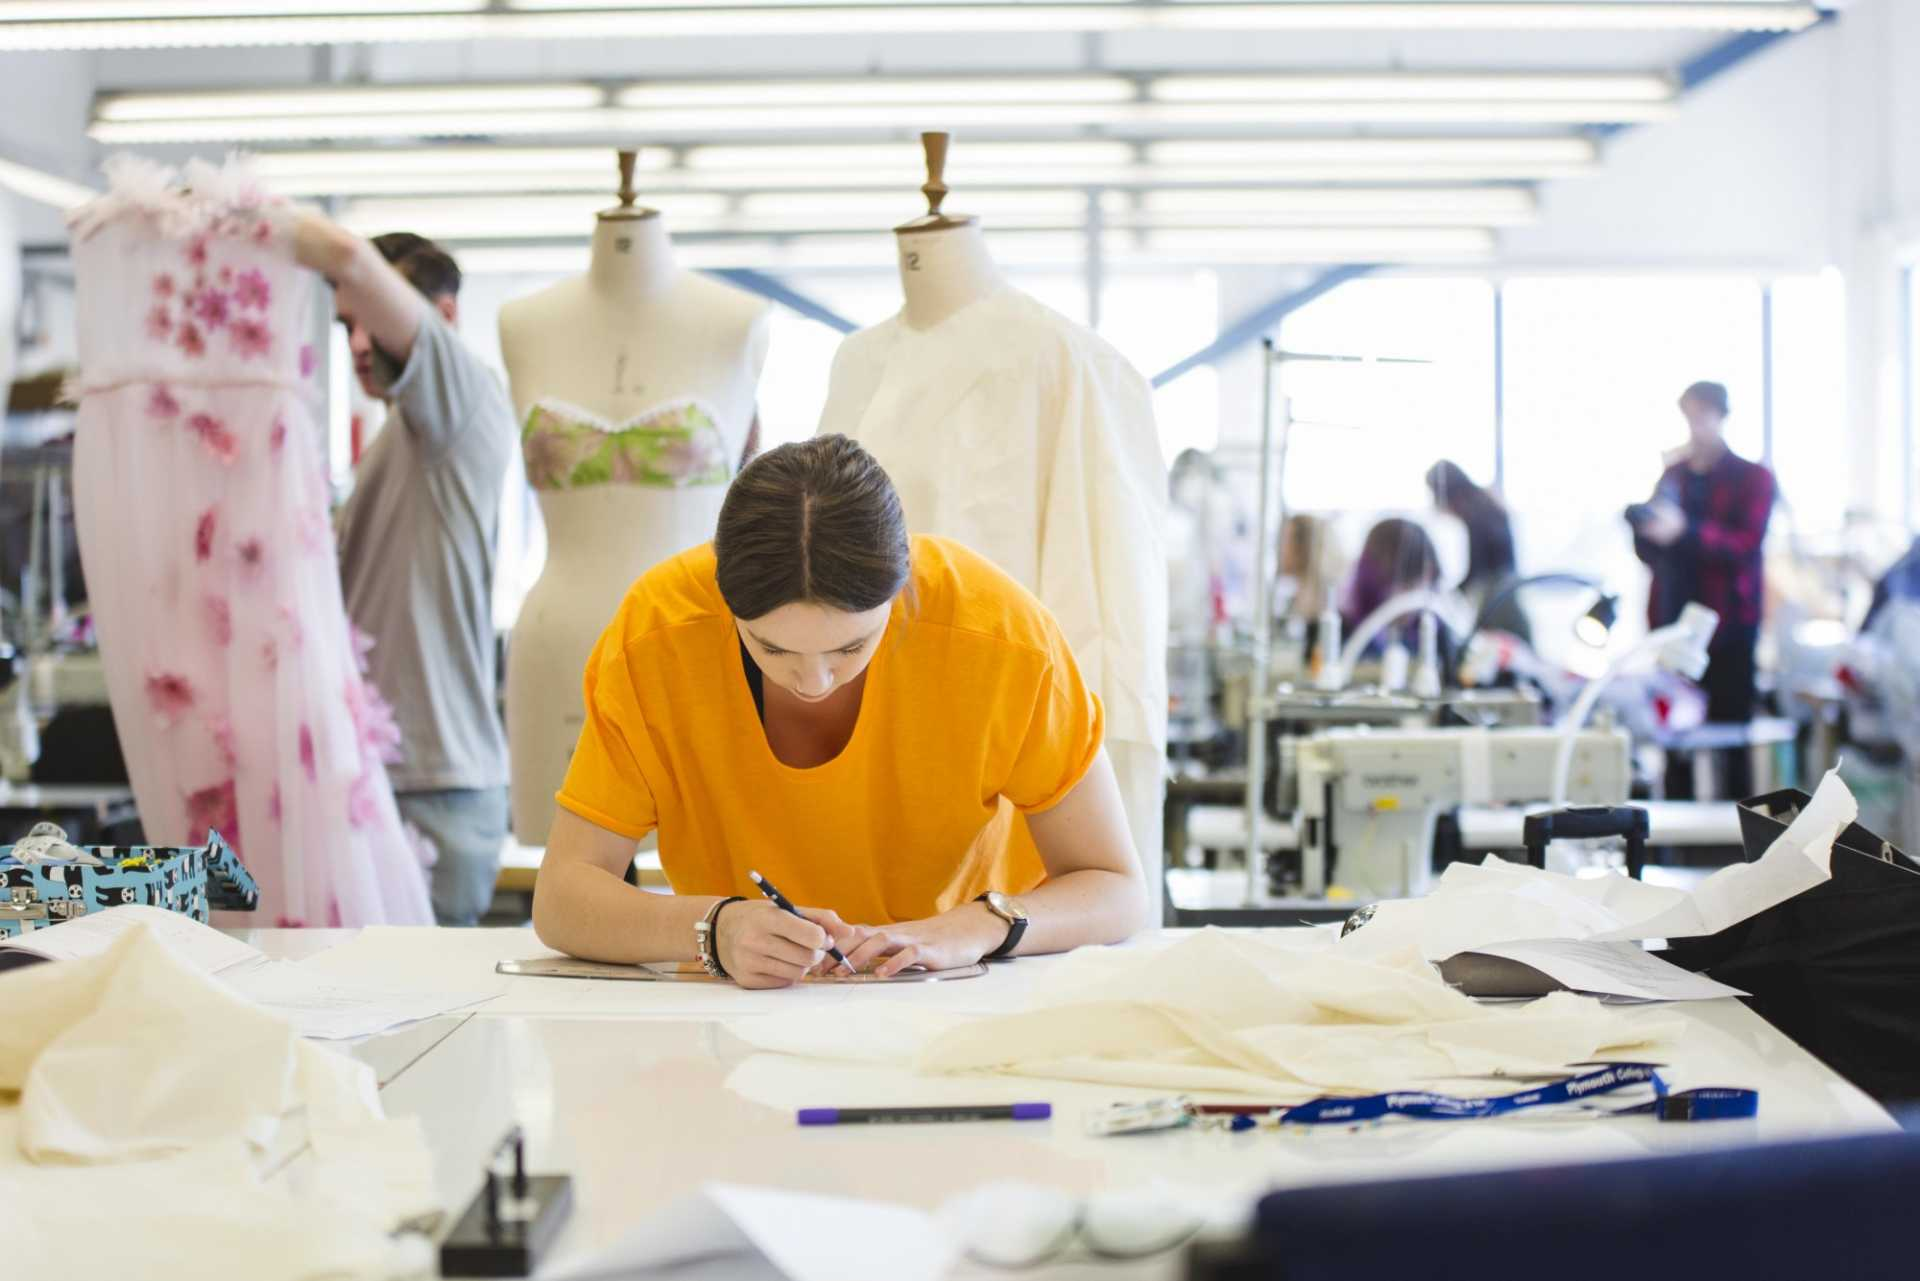 New Venture Launch To Revive Fashion Manufacture In Plymouth The Manufacturer